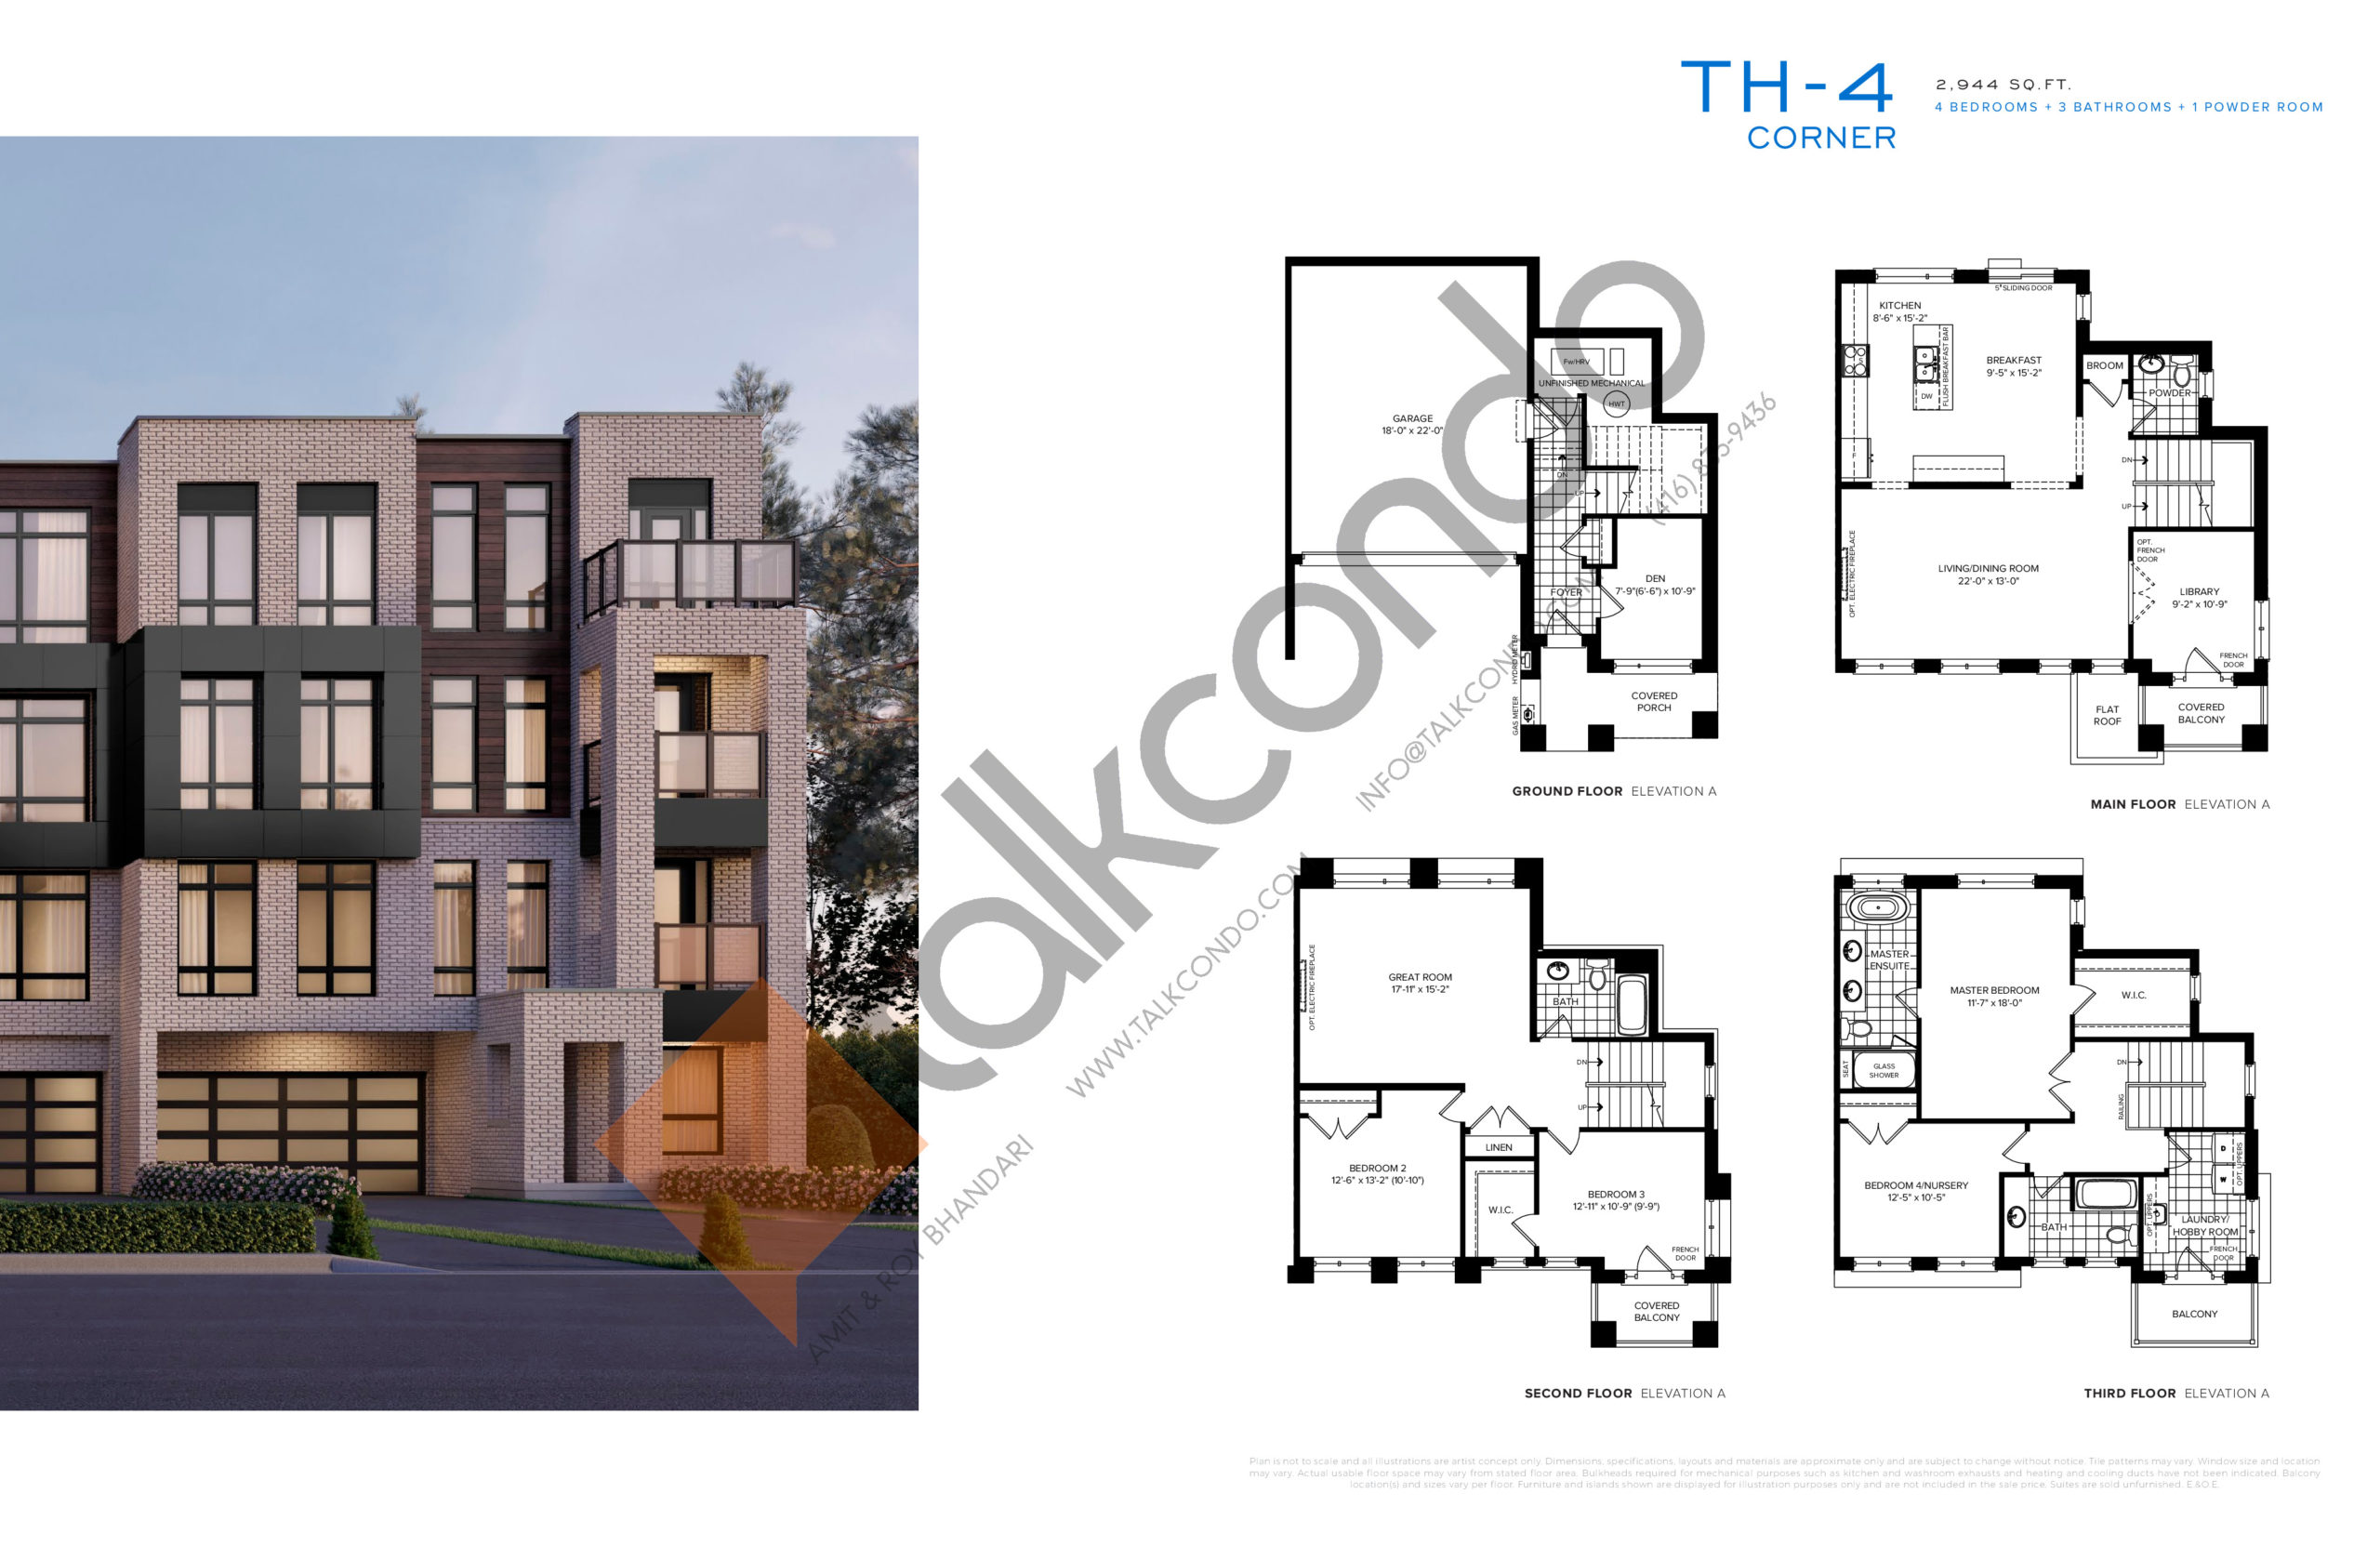 TH-4 Corner Floor Plan at SXSW Ravine Towns - 2944 sq.ft